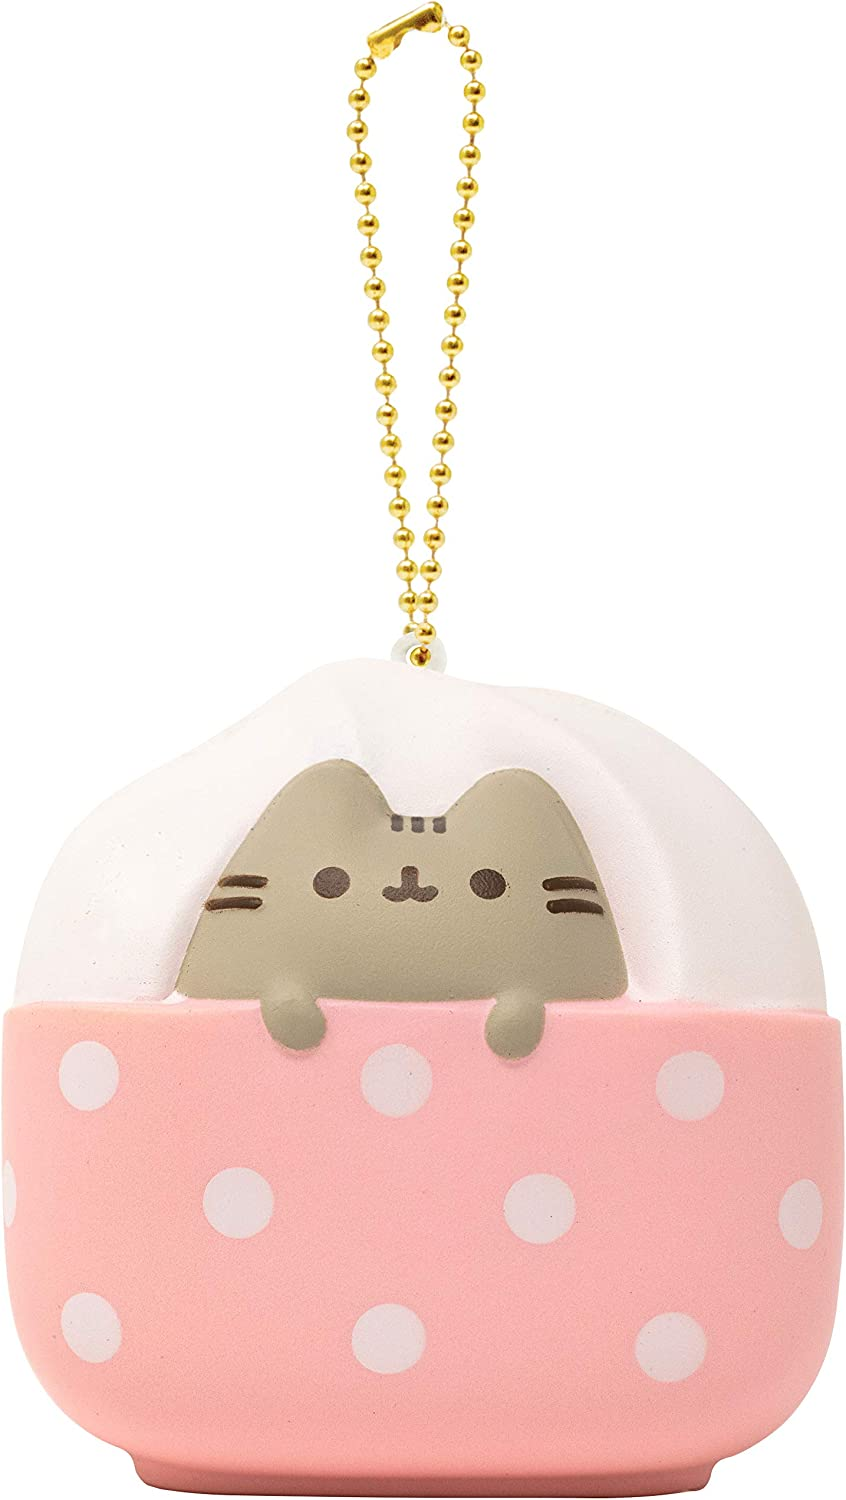 Hamee Pusheen Tabby Cat Junk Food Slow Rising Squishy Toy [Square Series] (Ice Cream) [Christmas Tree Ornaments, Gift Box, Party Favors, Gift Basket Filler, Stress Relief Toys]